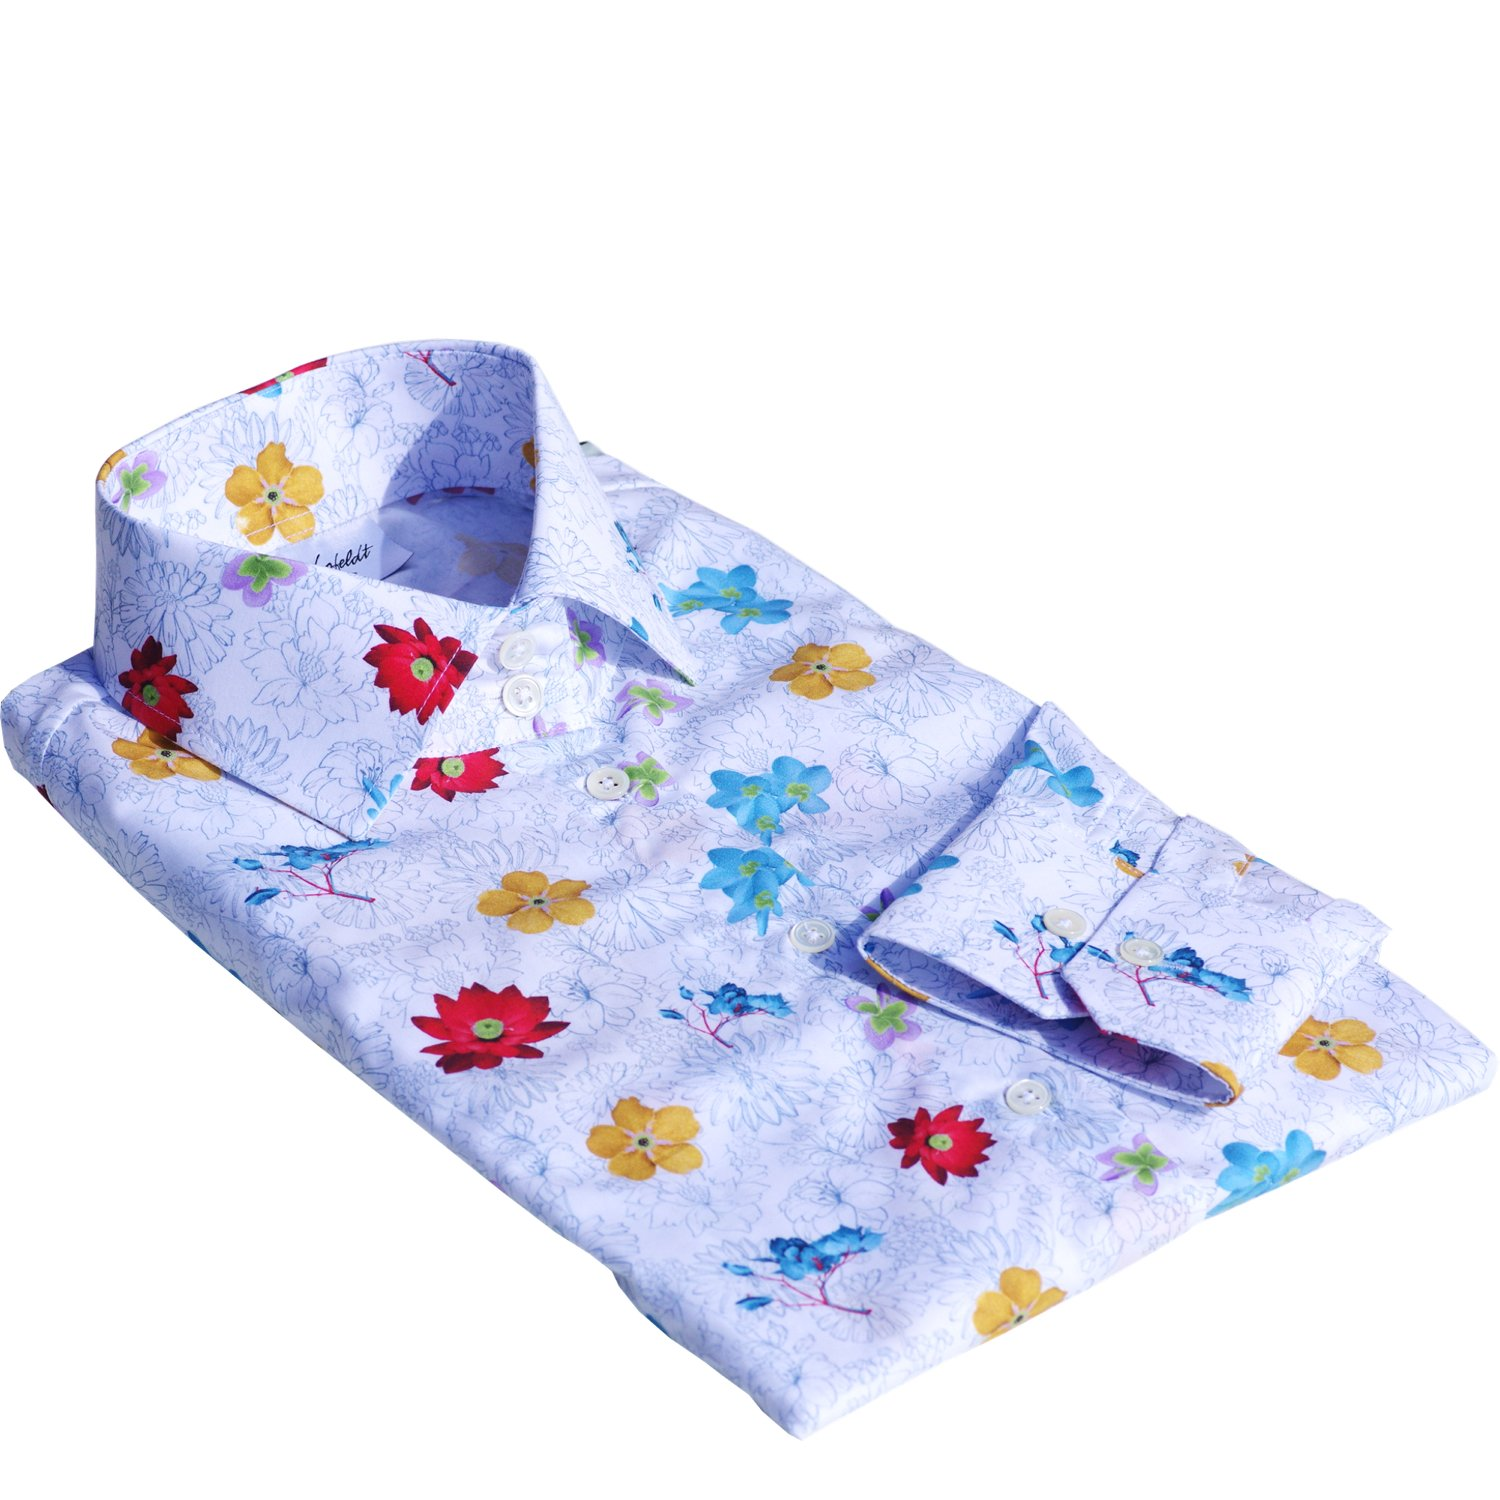 MILAN dress shirt with flowers